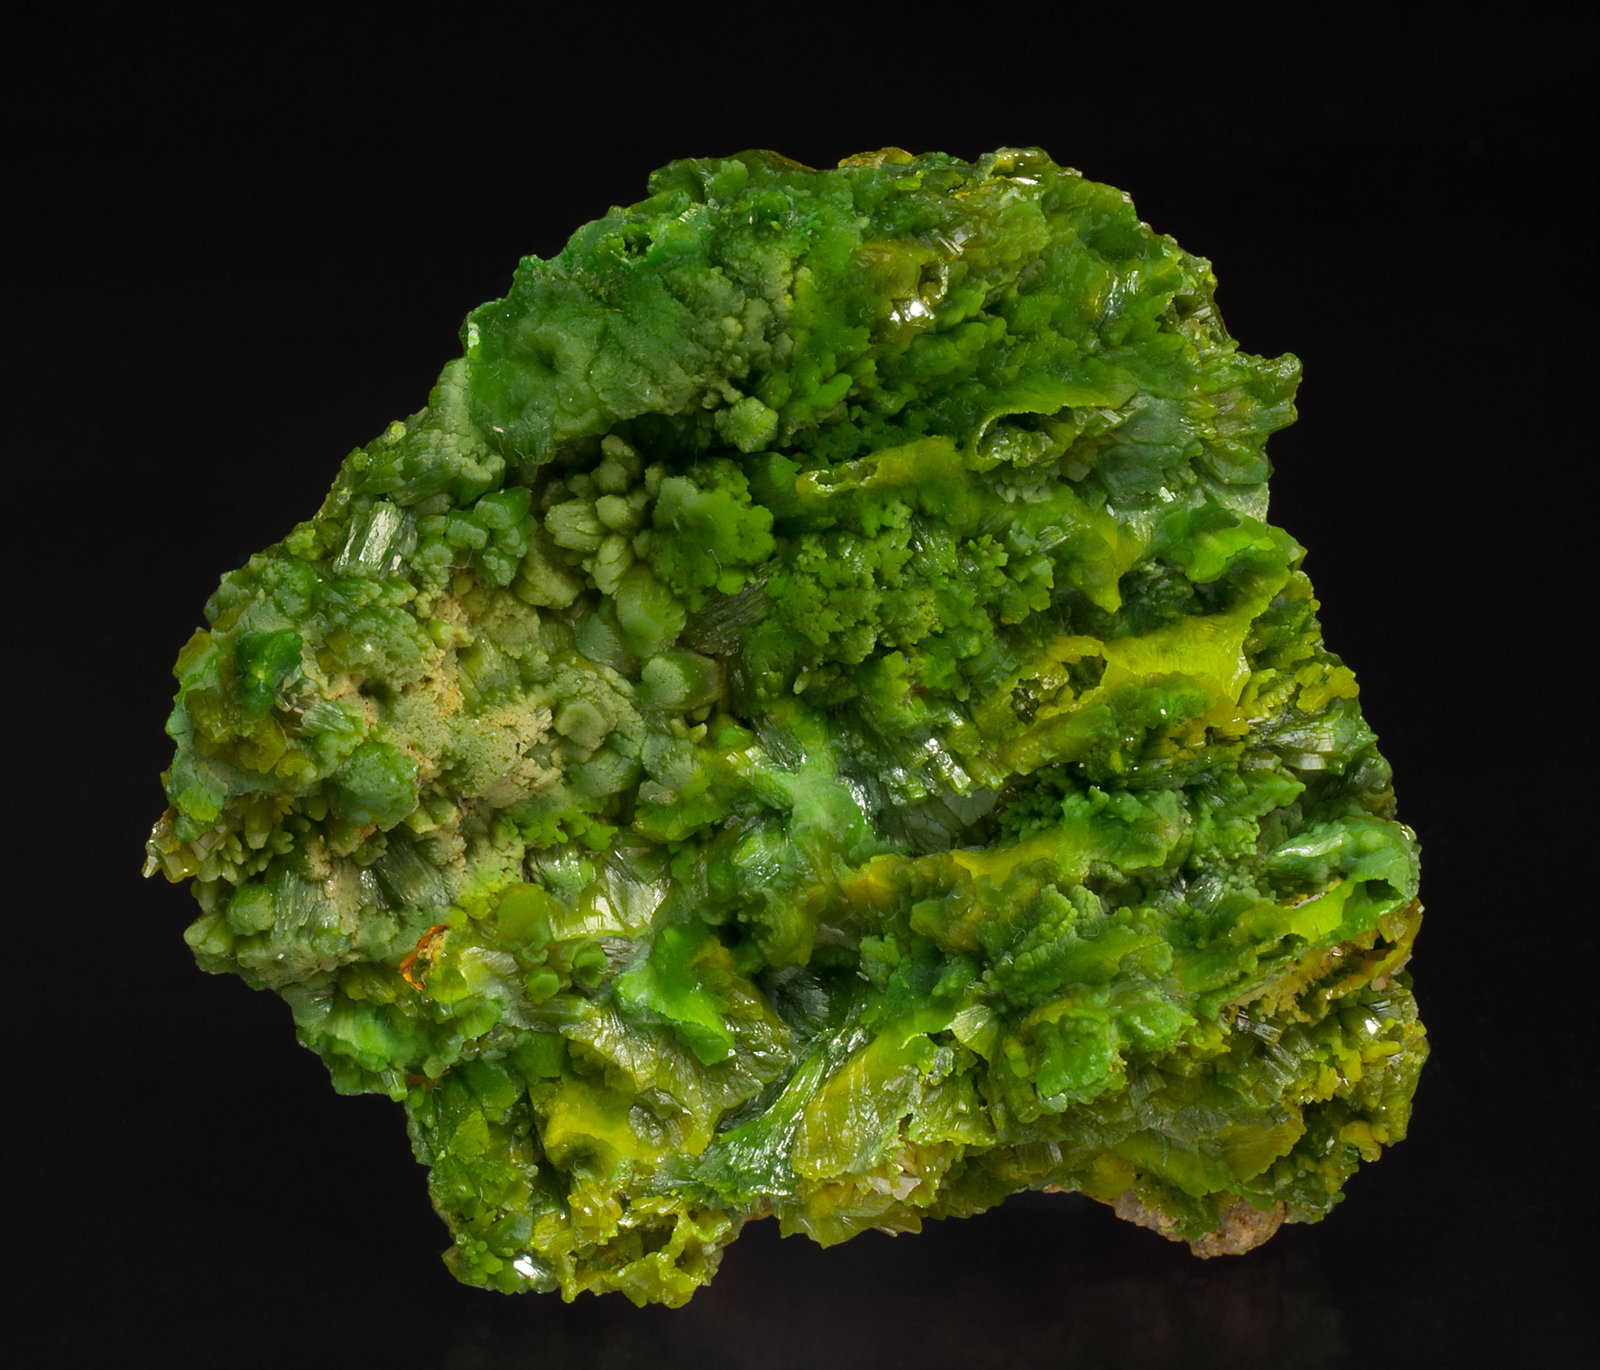 specimens/s_imagesX7/Pyromorphite-TV50X7f.jpg